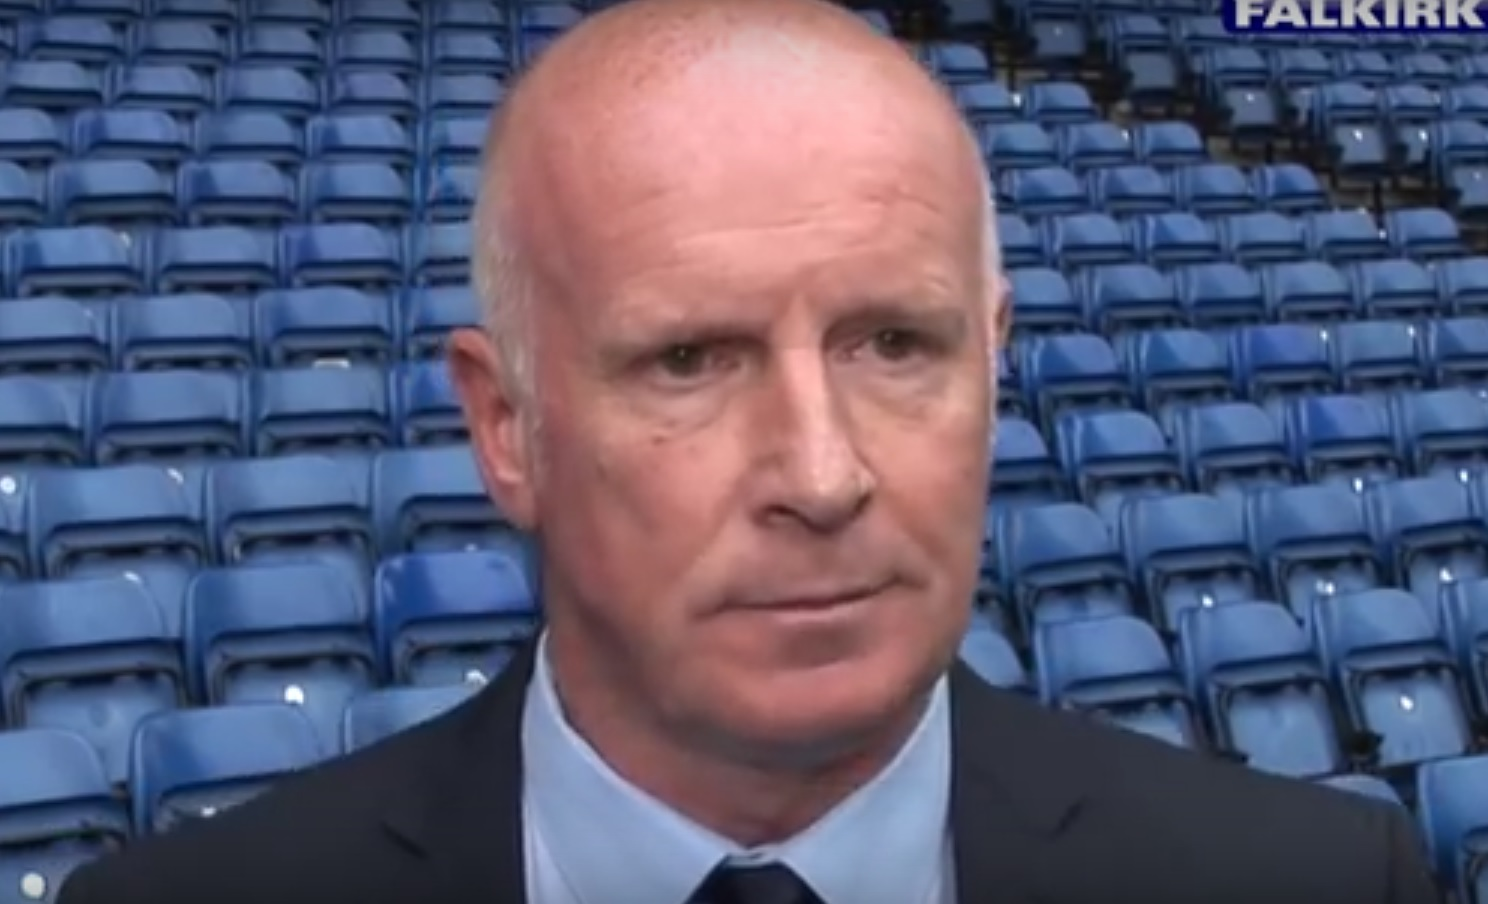 Peter Houston admits at Ibrox that Falkirk are a 'diddy team'